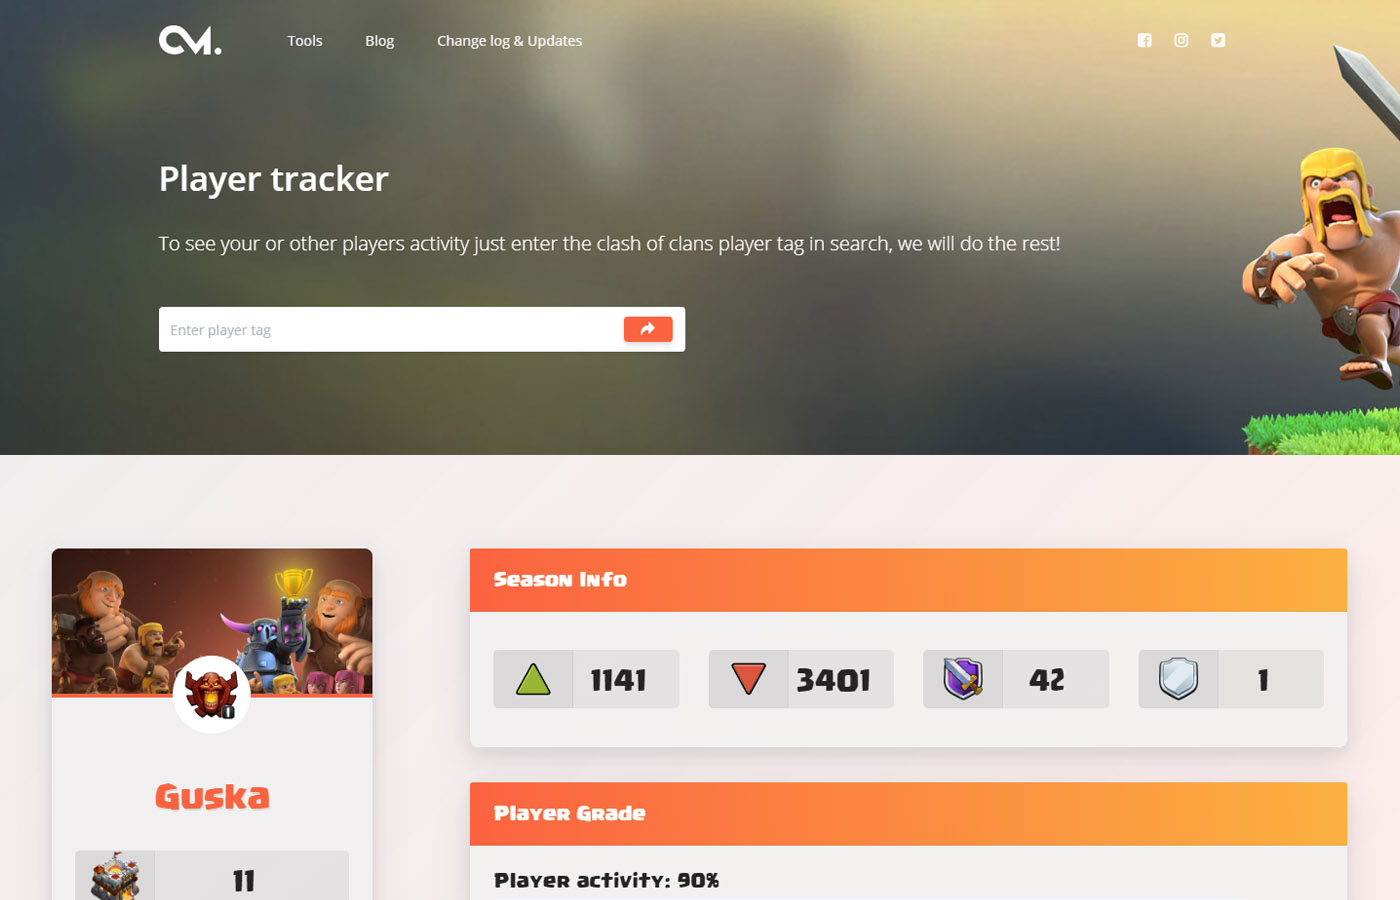 Player tracker for clash of clans